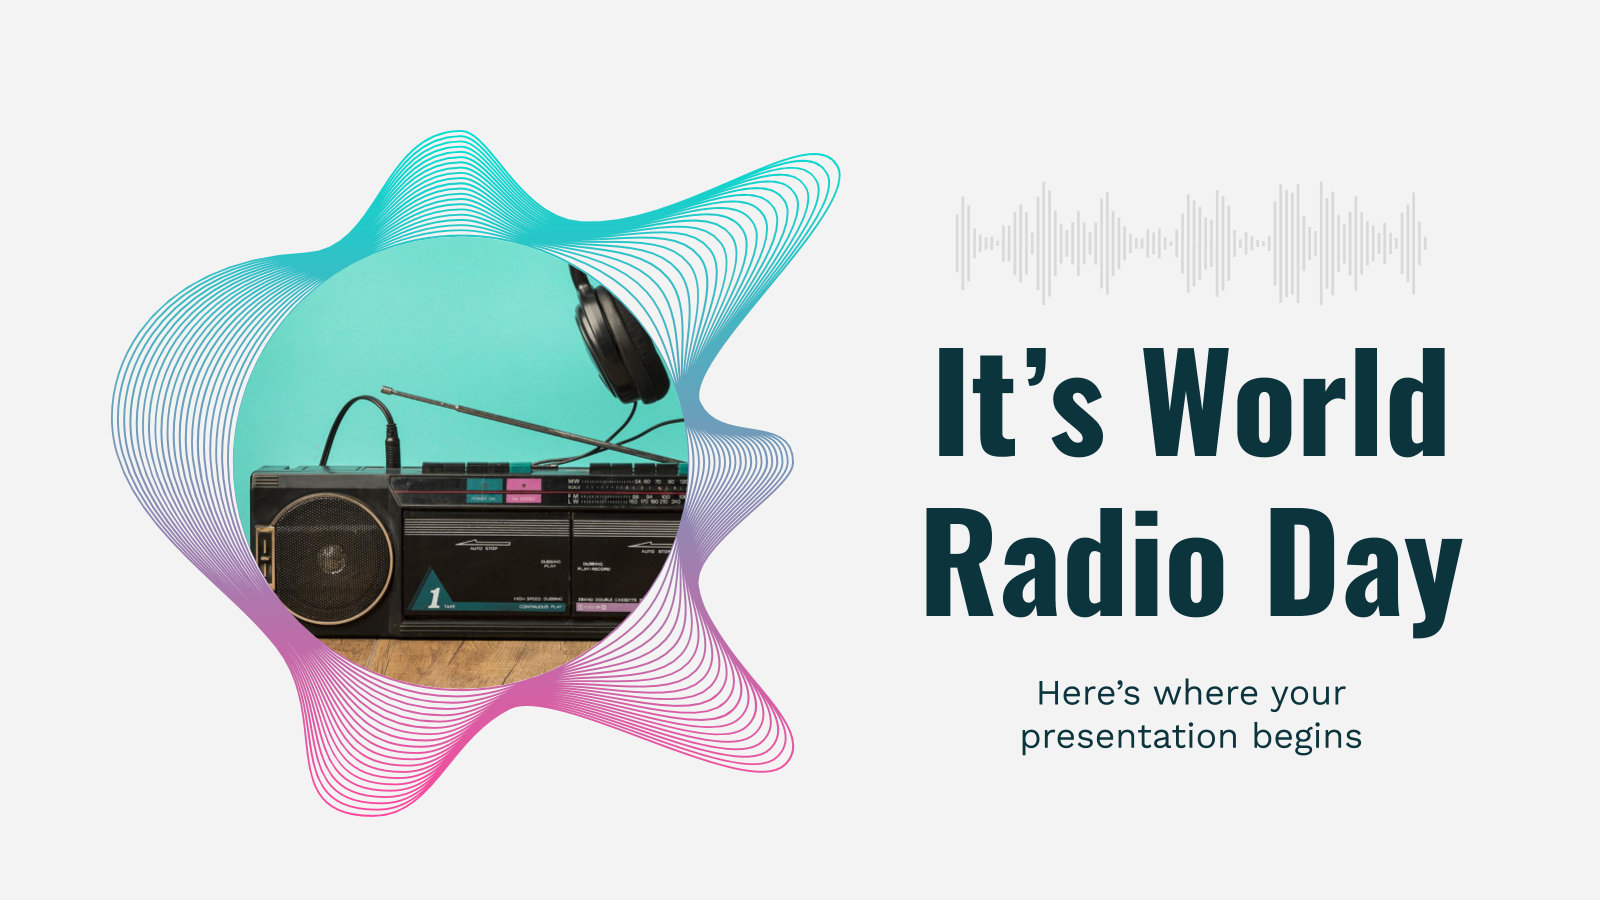 It's World Radio Day presentation template